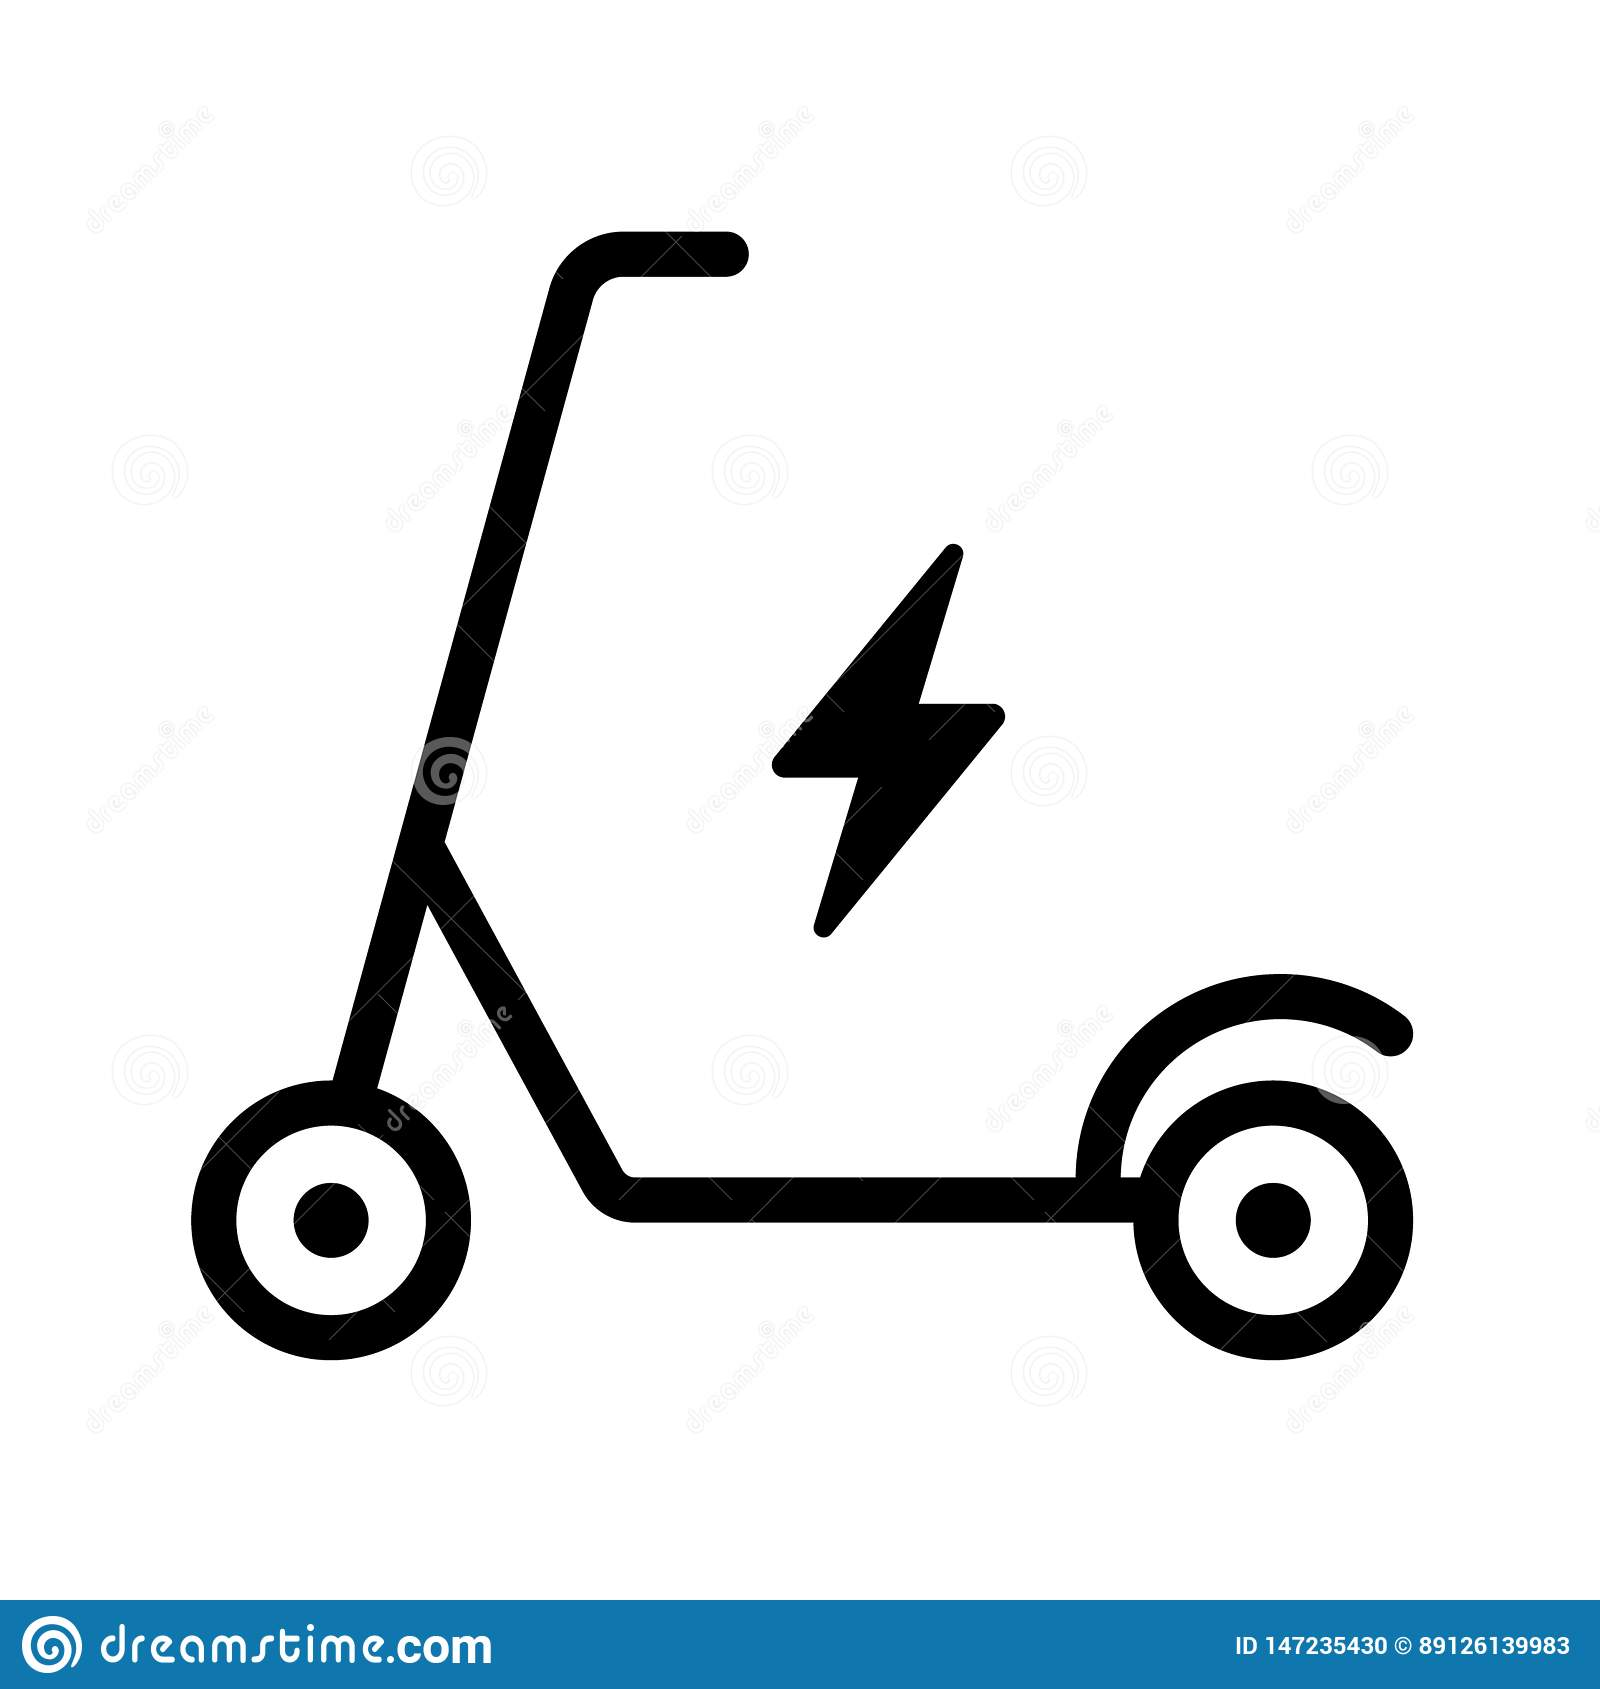 electric scooter vector icon stock vector illustration of isolated power 147235430 https www dreamstime com electric scooter vector icon white background environmentally friendly transport image147235430